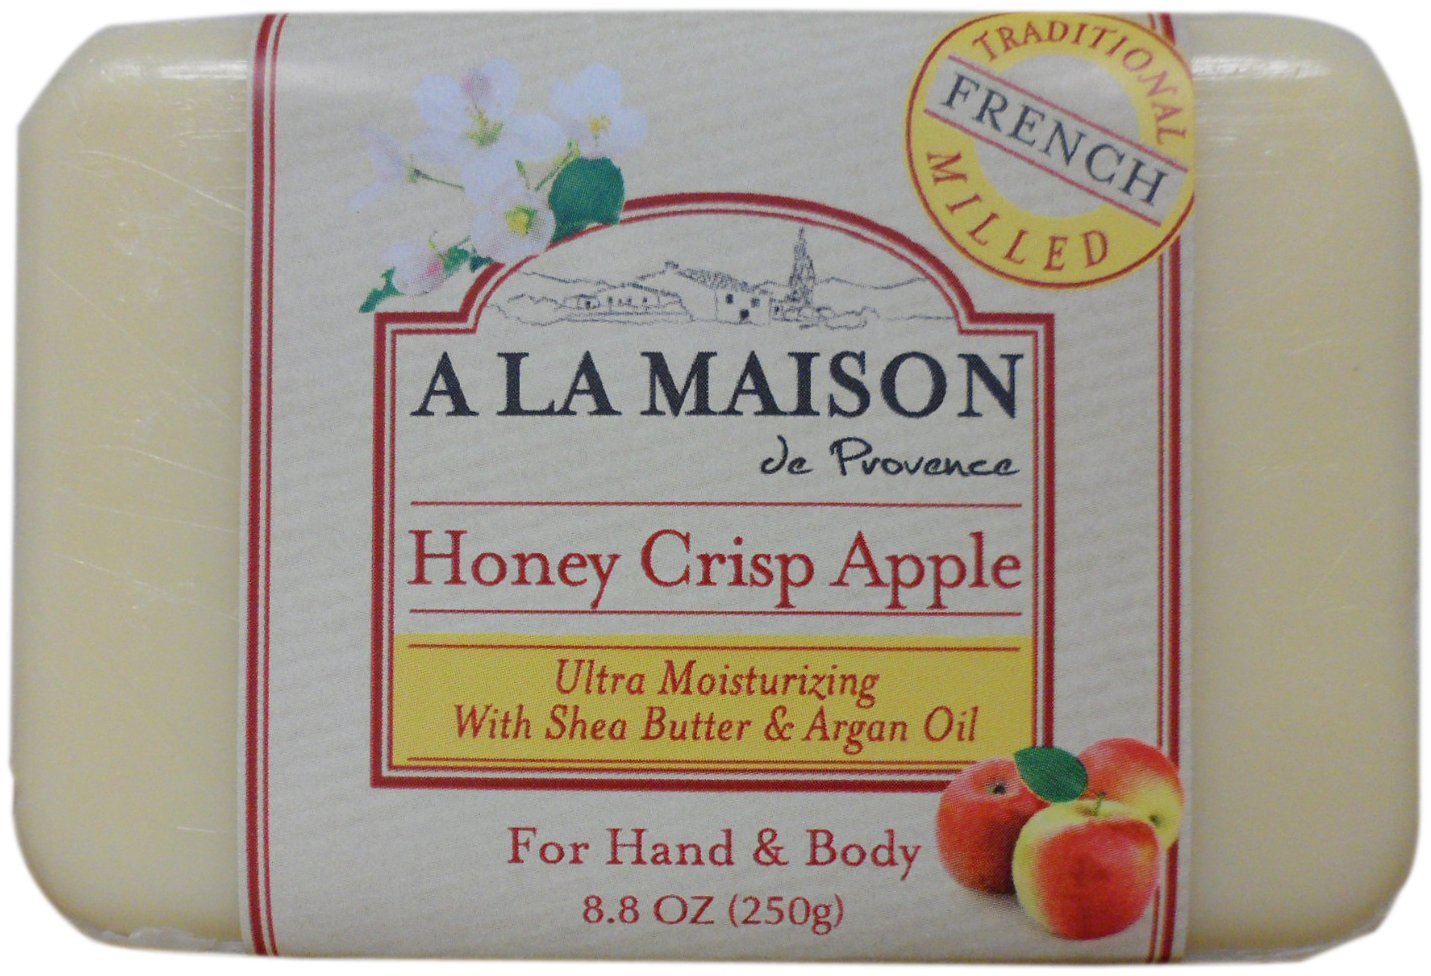 A La Maison Honey Crisp Apple Soap, 8.8 Ounce